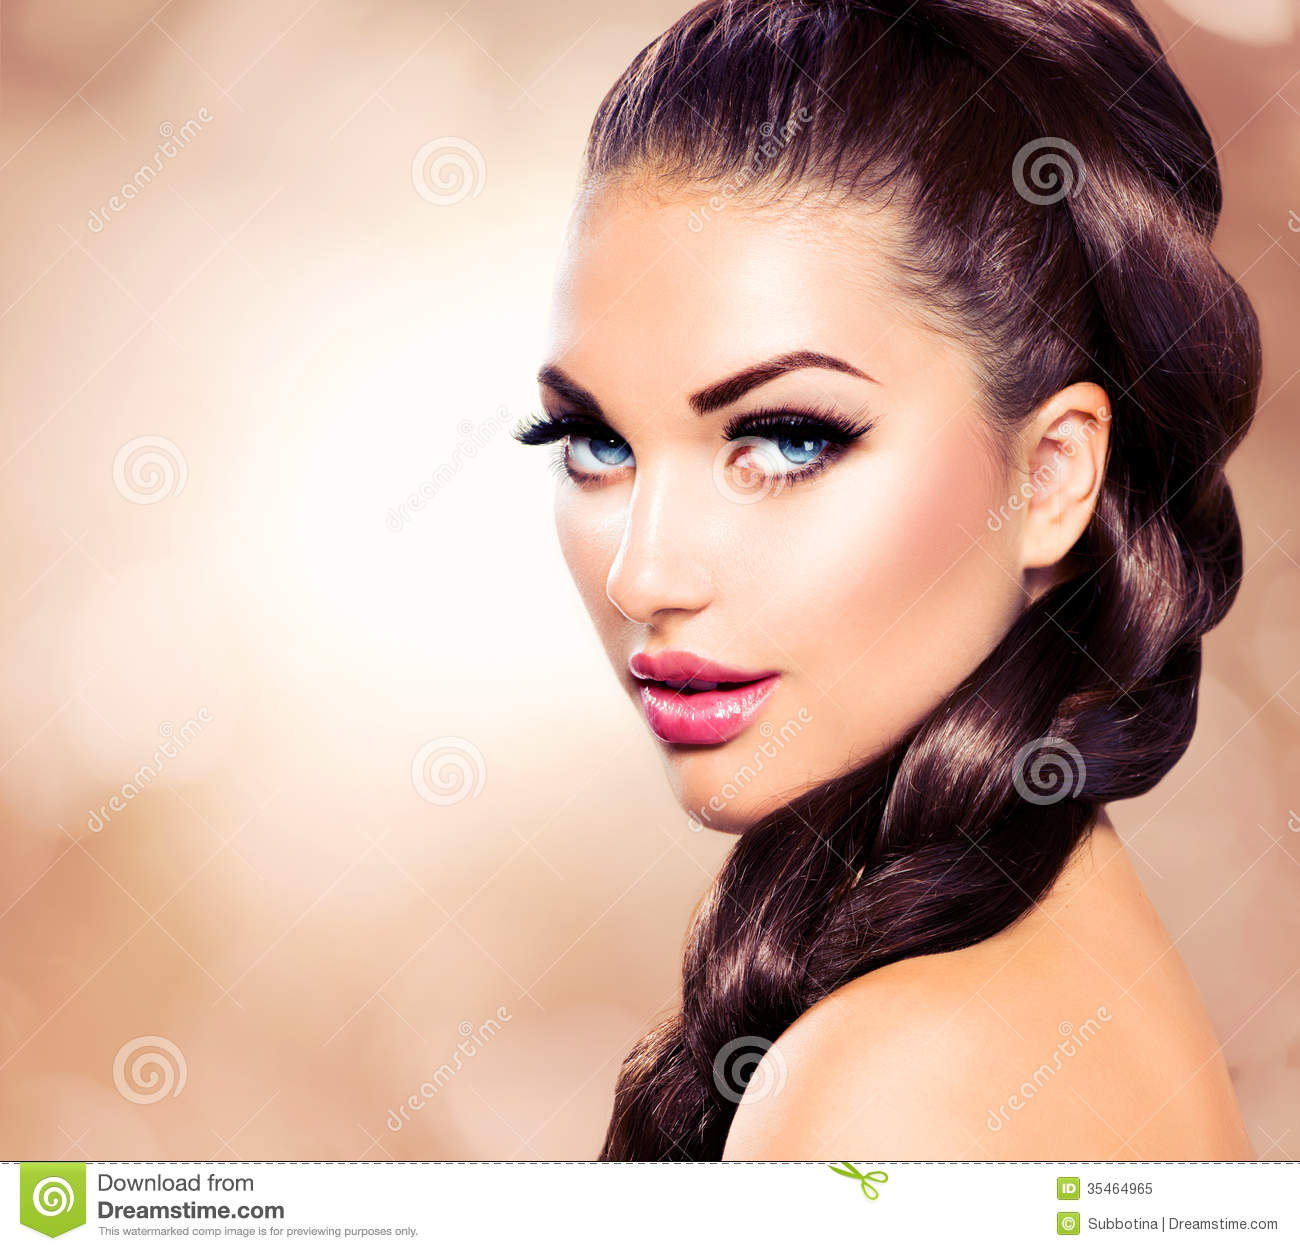 Woman With Healthy Long Braid Stock Image Image 35464965